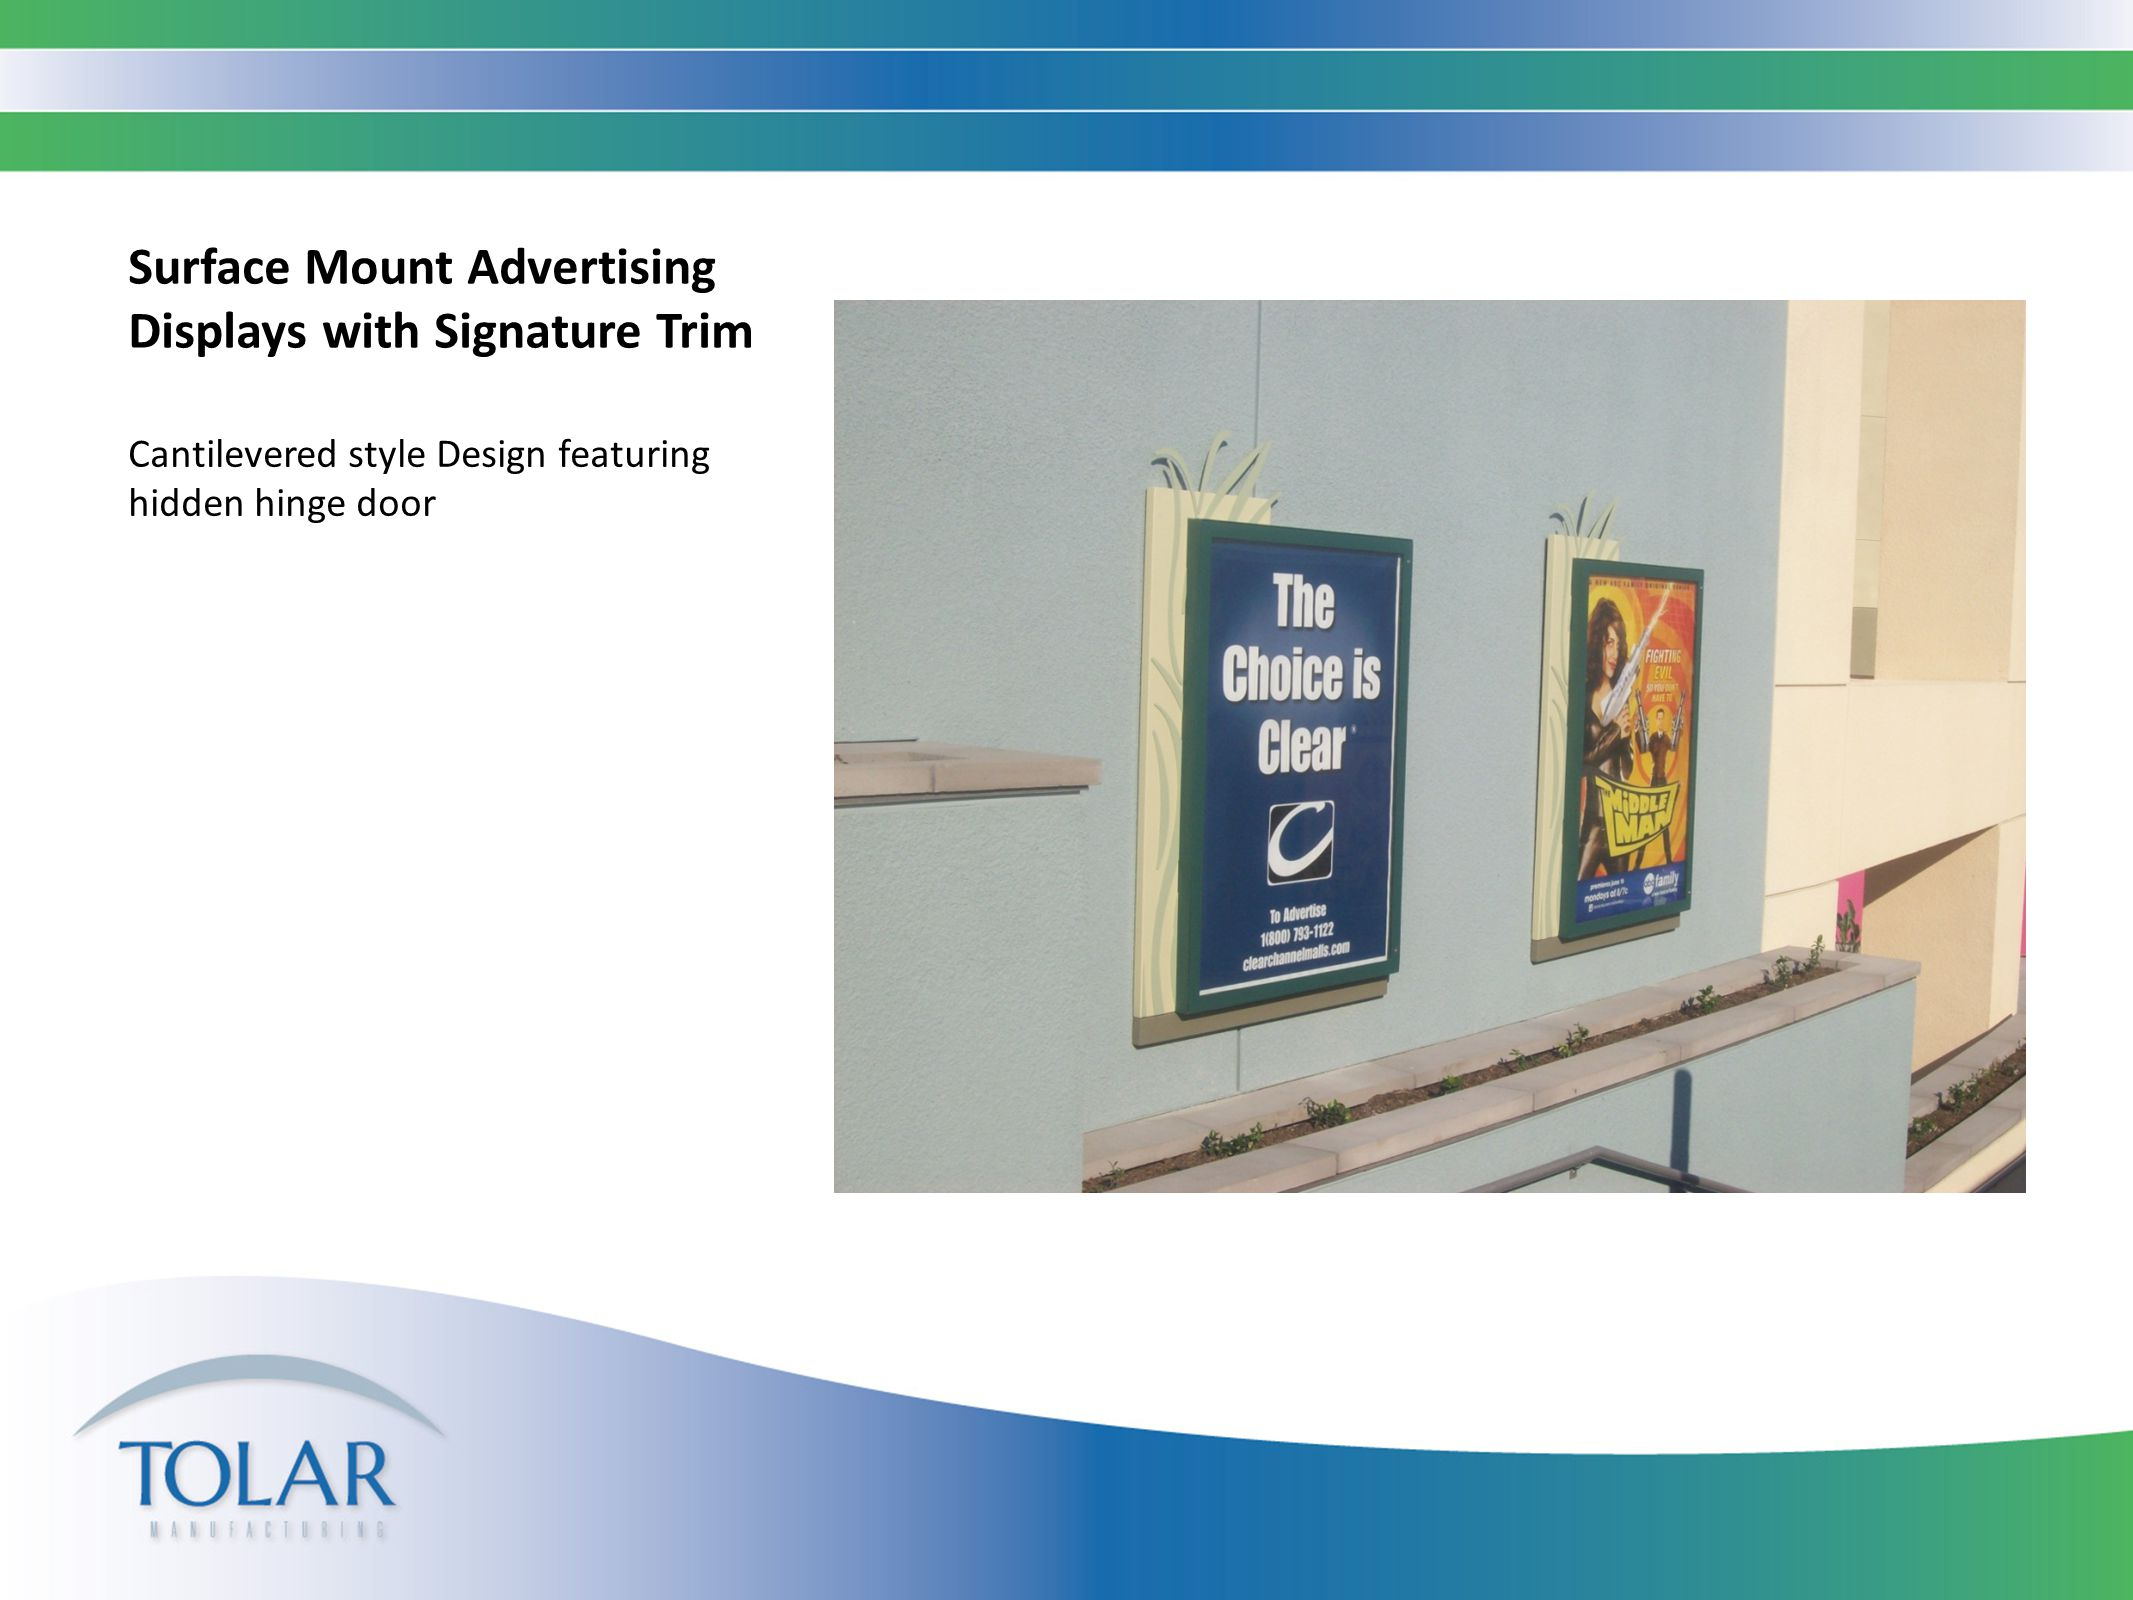 Surface Mount Advertising Displays with Signature Trim Cantilevered style Design featuring hidden hinge door